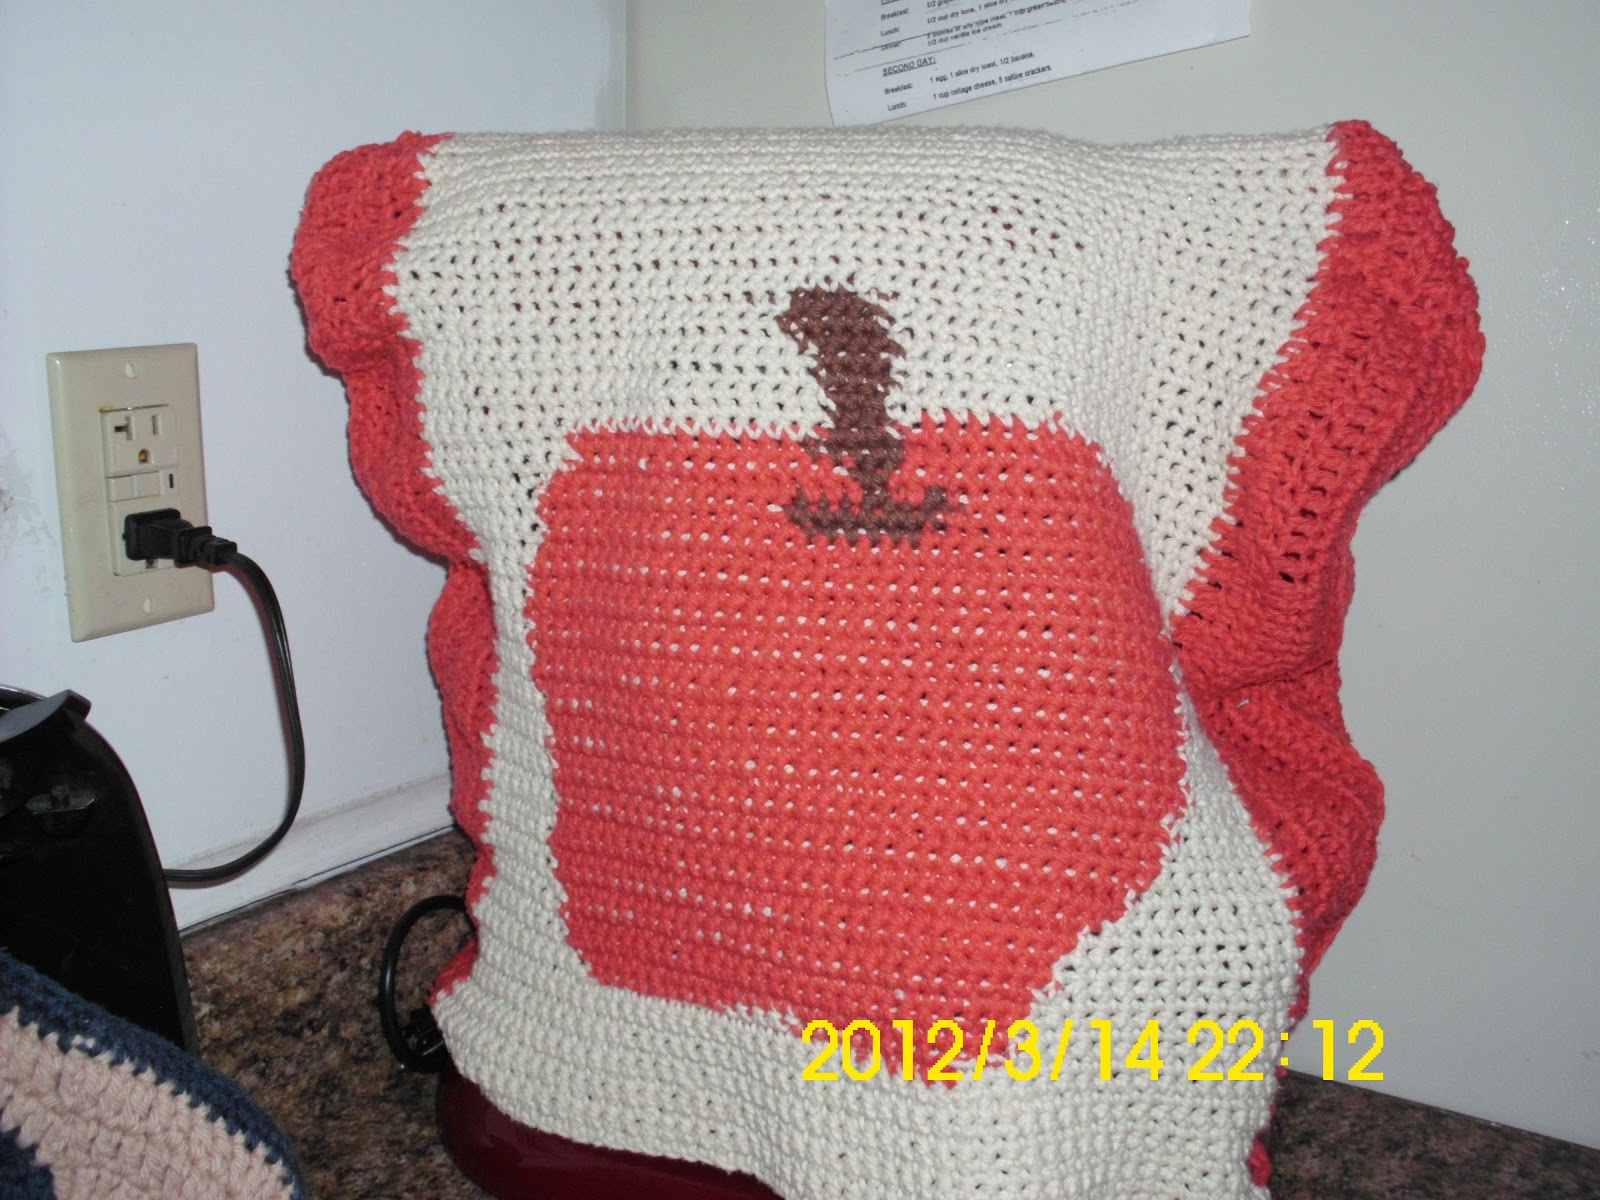 Mary Ann S Crochet My Original Pattern Mixer Cover